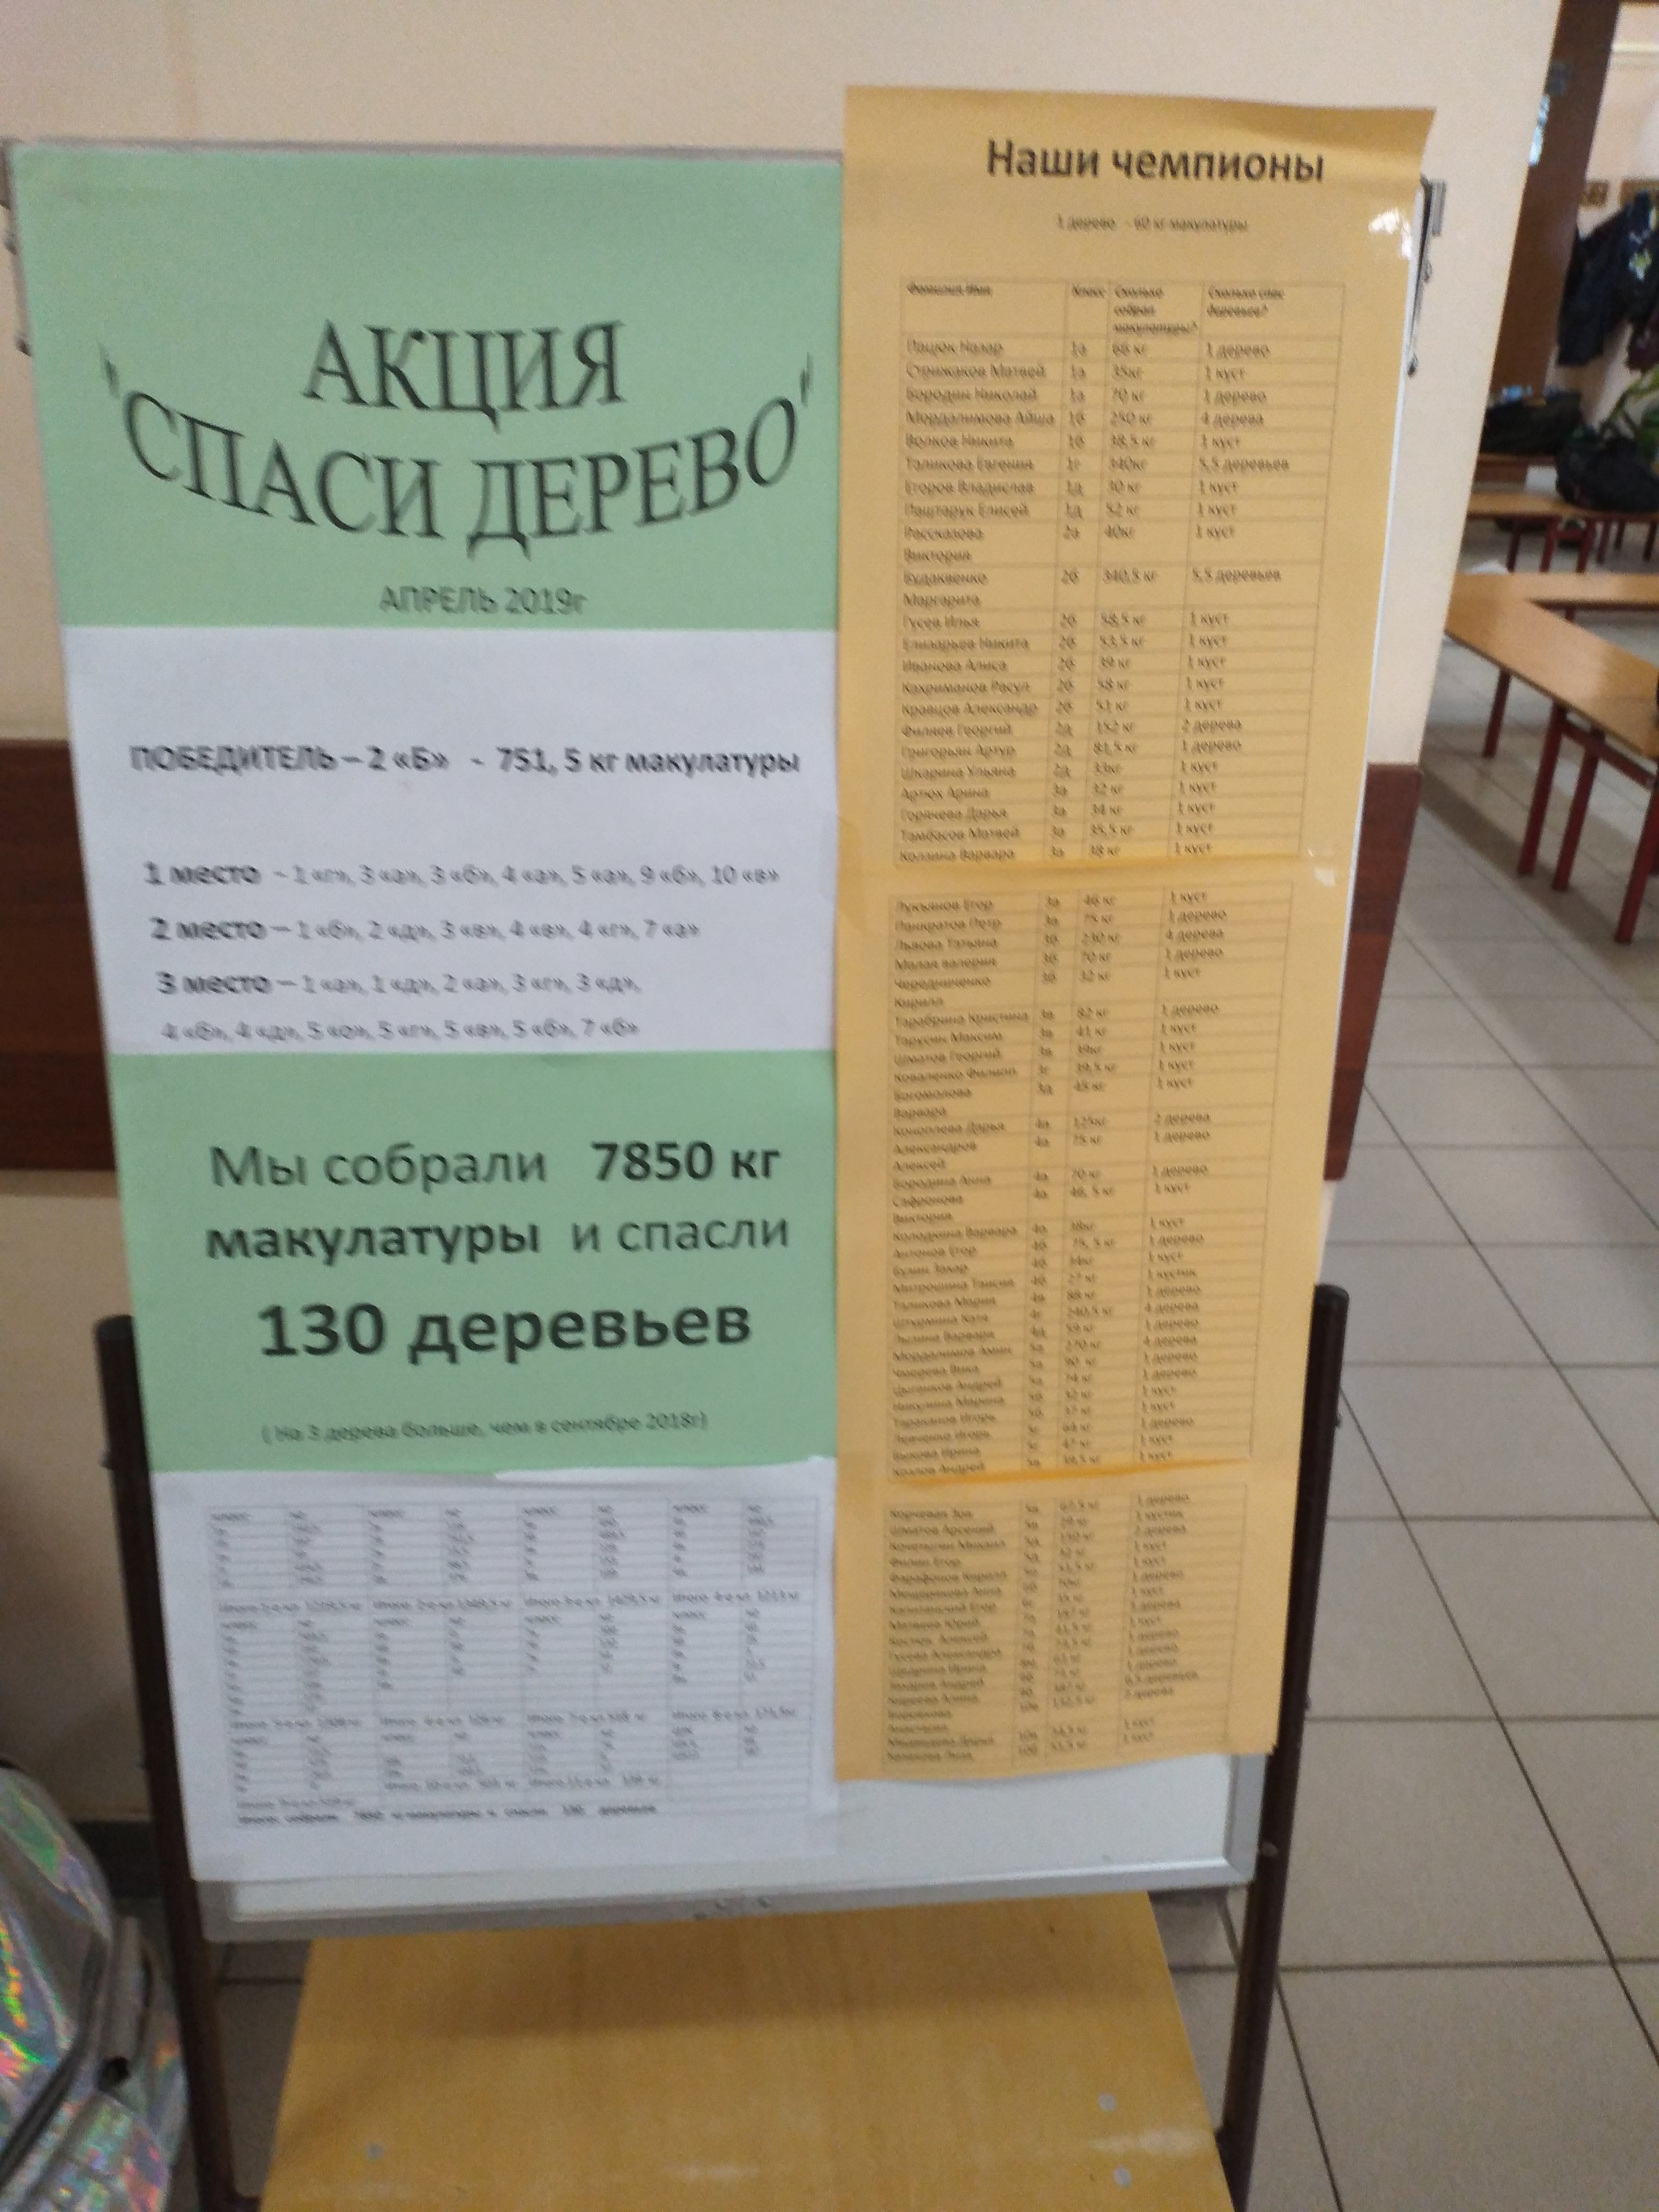 Moscow  Secondary School 2009 - Reduce, reuse, recycle3.jpg